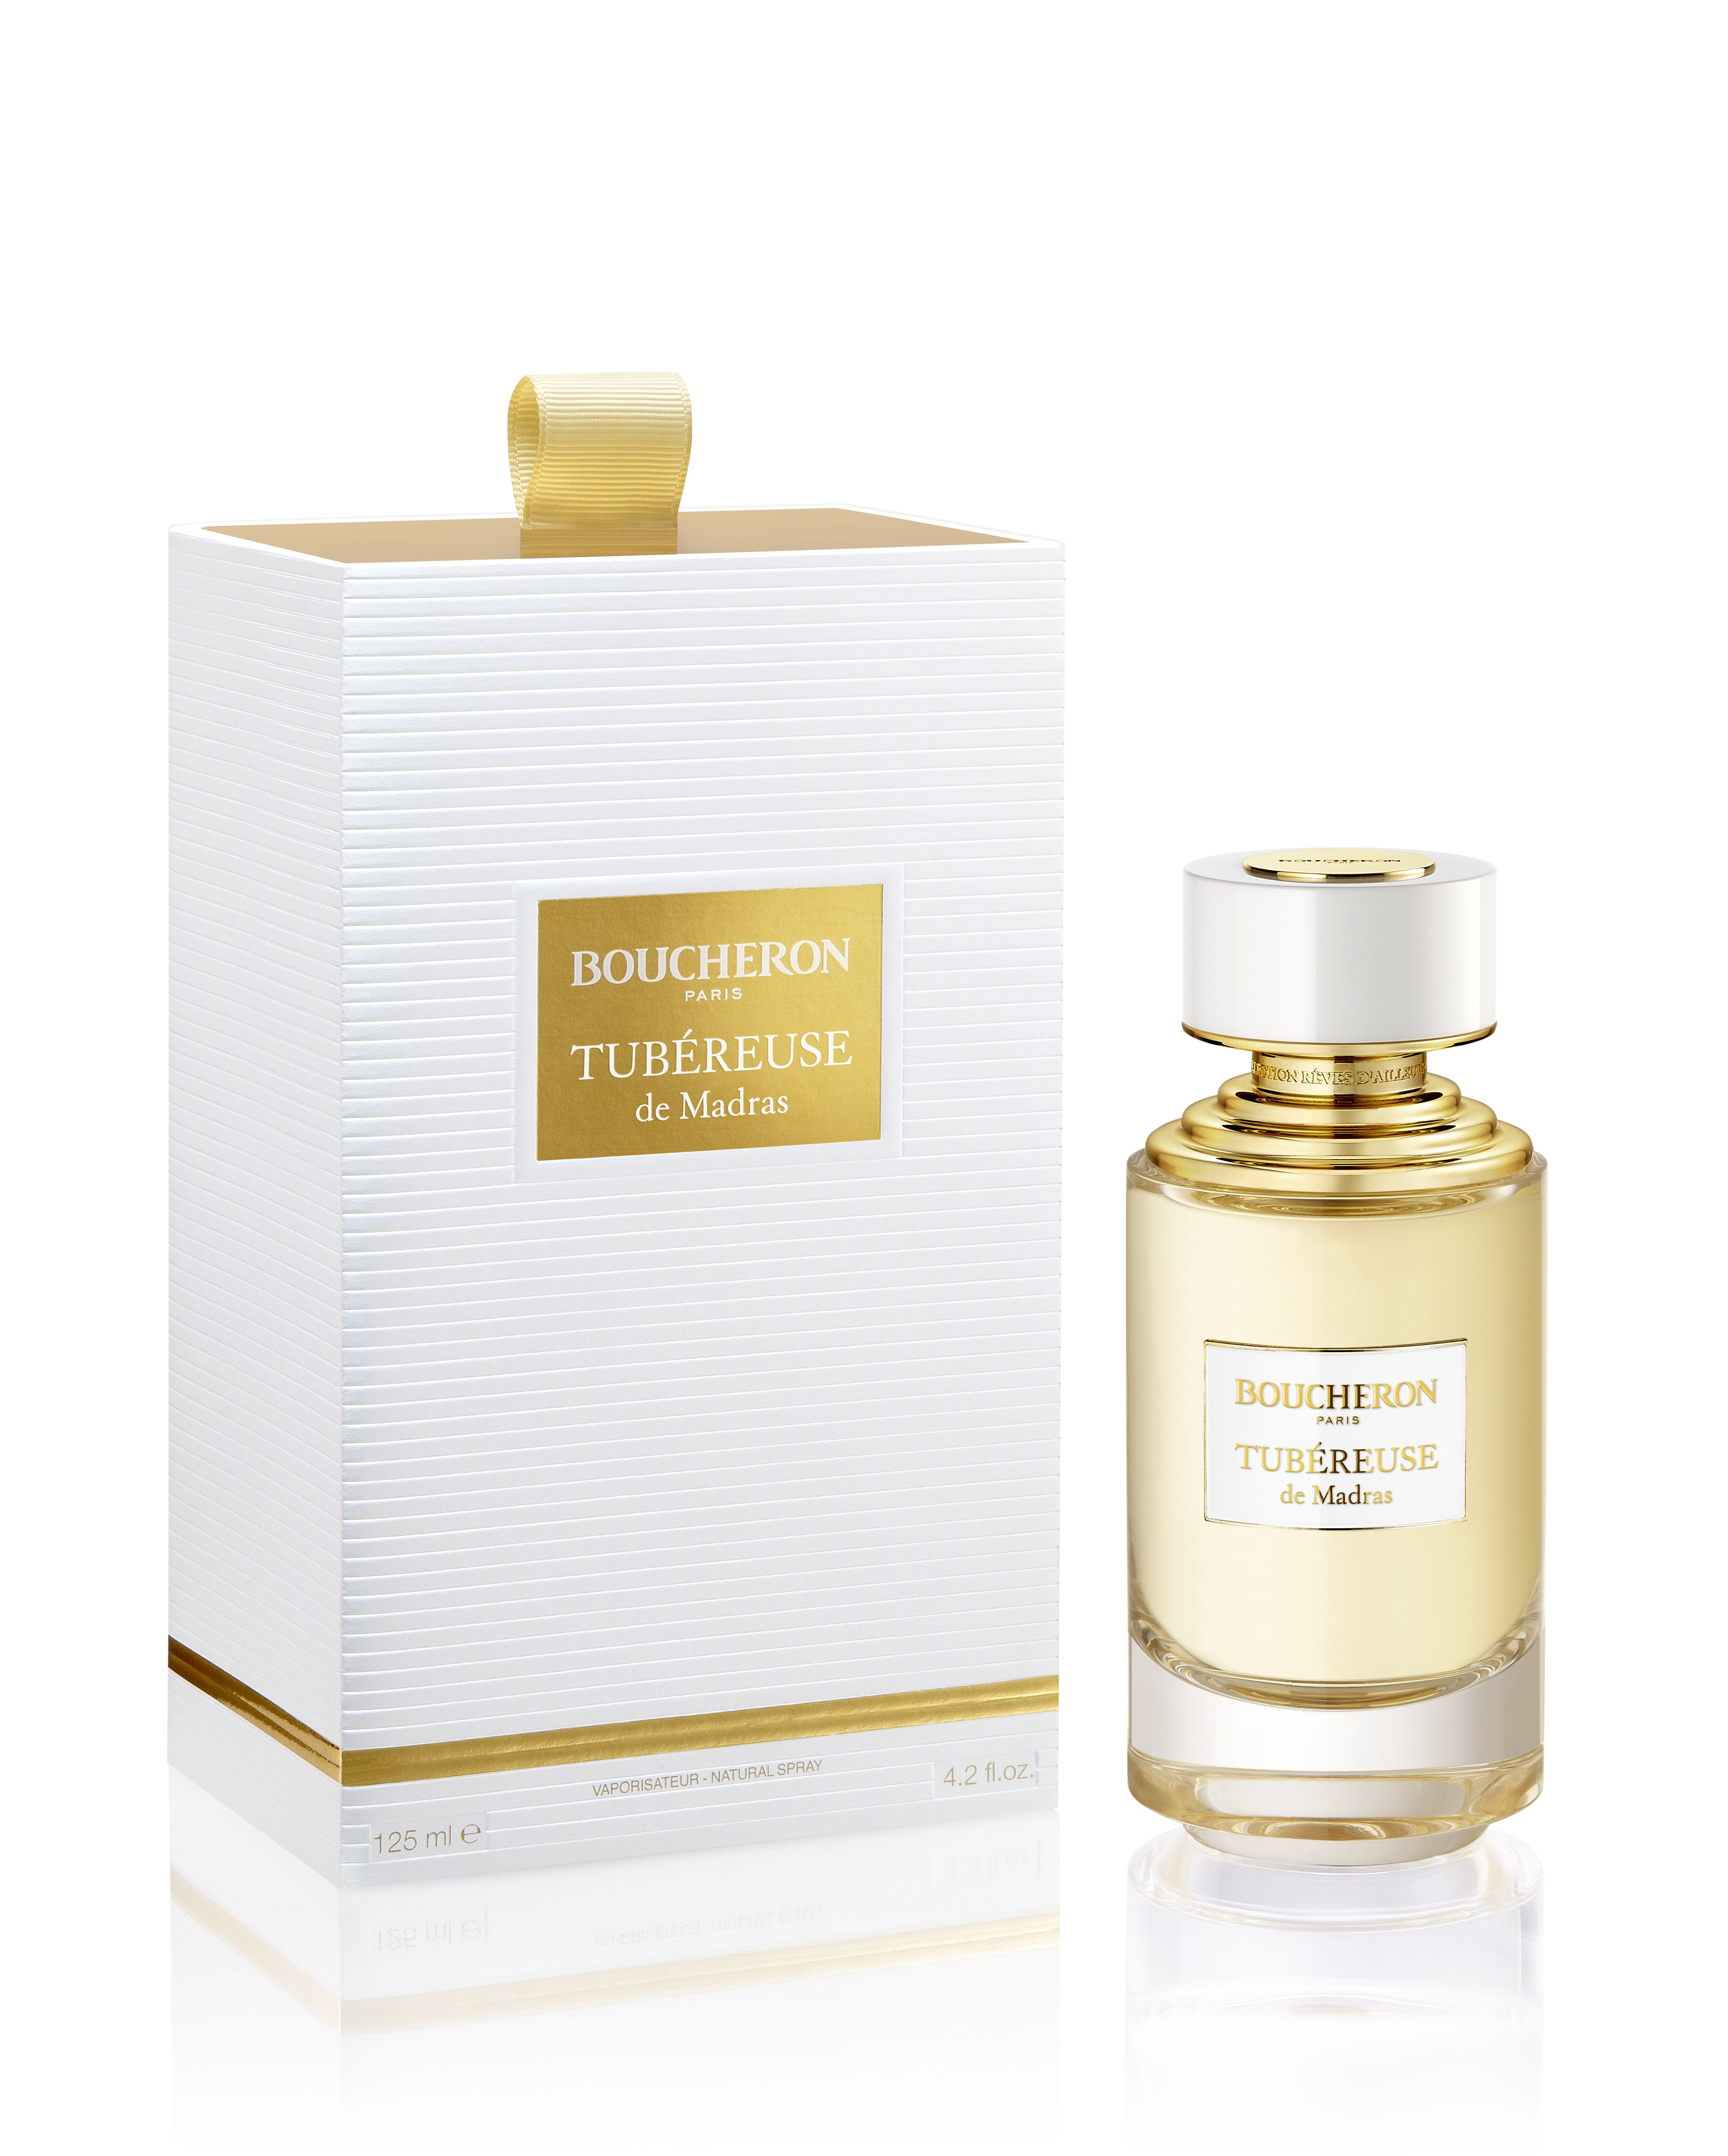 0911c2fefa6 La collection Boucheron, Tubéreuse de Madras. The fragrance is enhanced by  a beautiful box in gold and white, the sleeve of which is embellished with  a ...